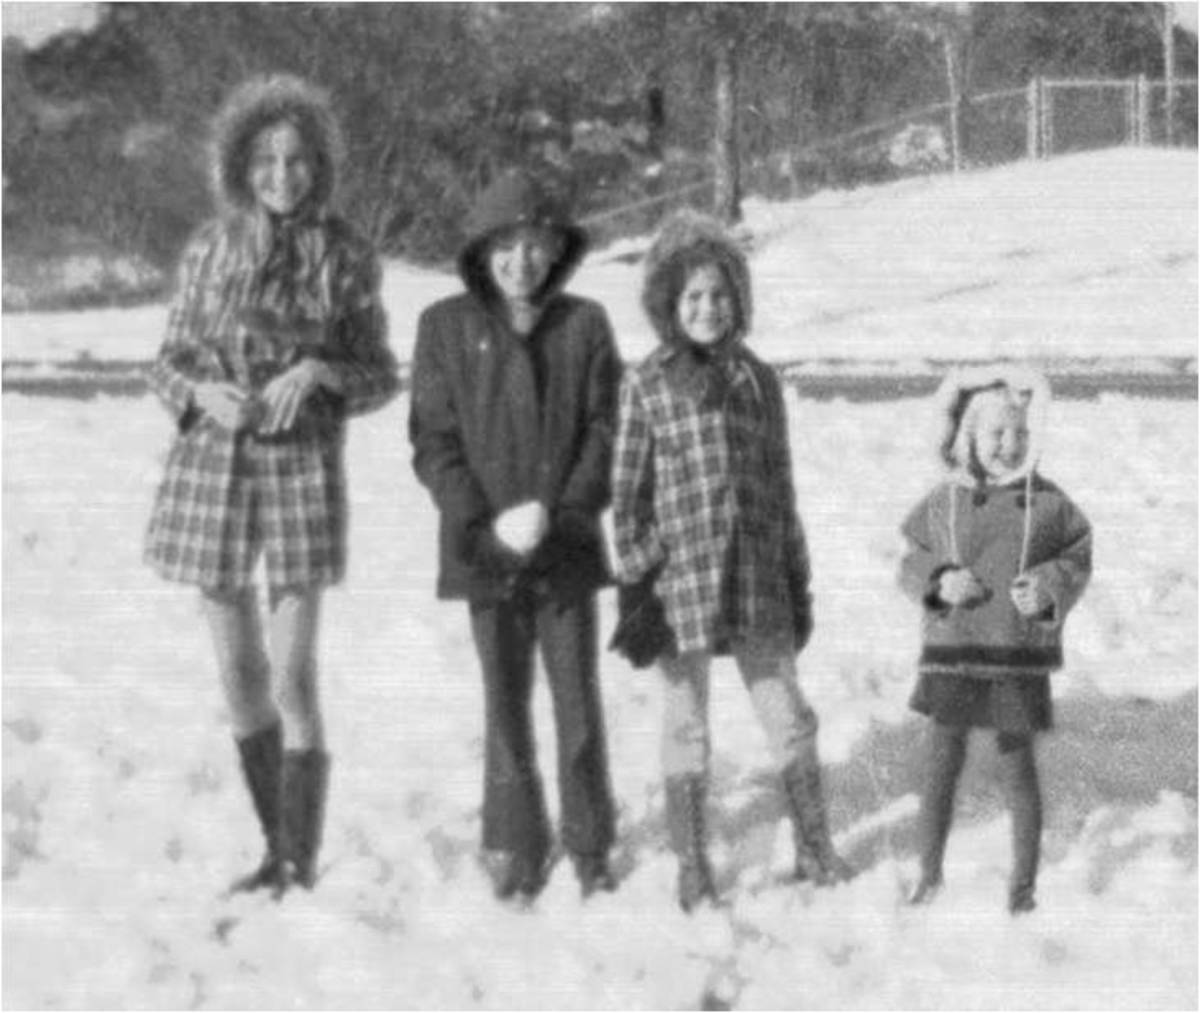 My siblings and I on a freak snow day in the South. I am the oldest one to the far left. Look at the mini skirt I am wearing. Ha ha.